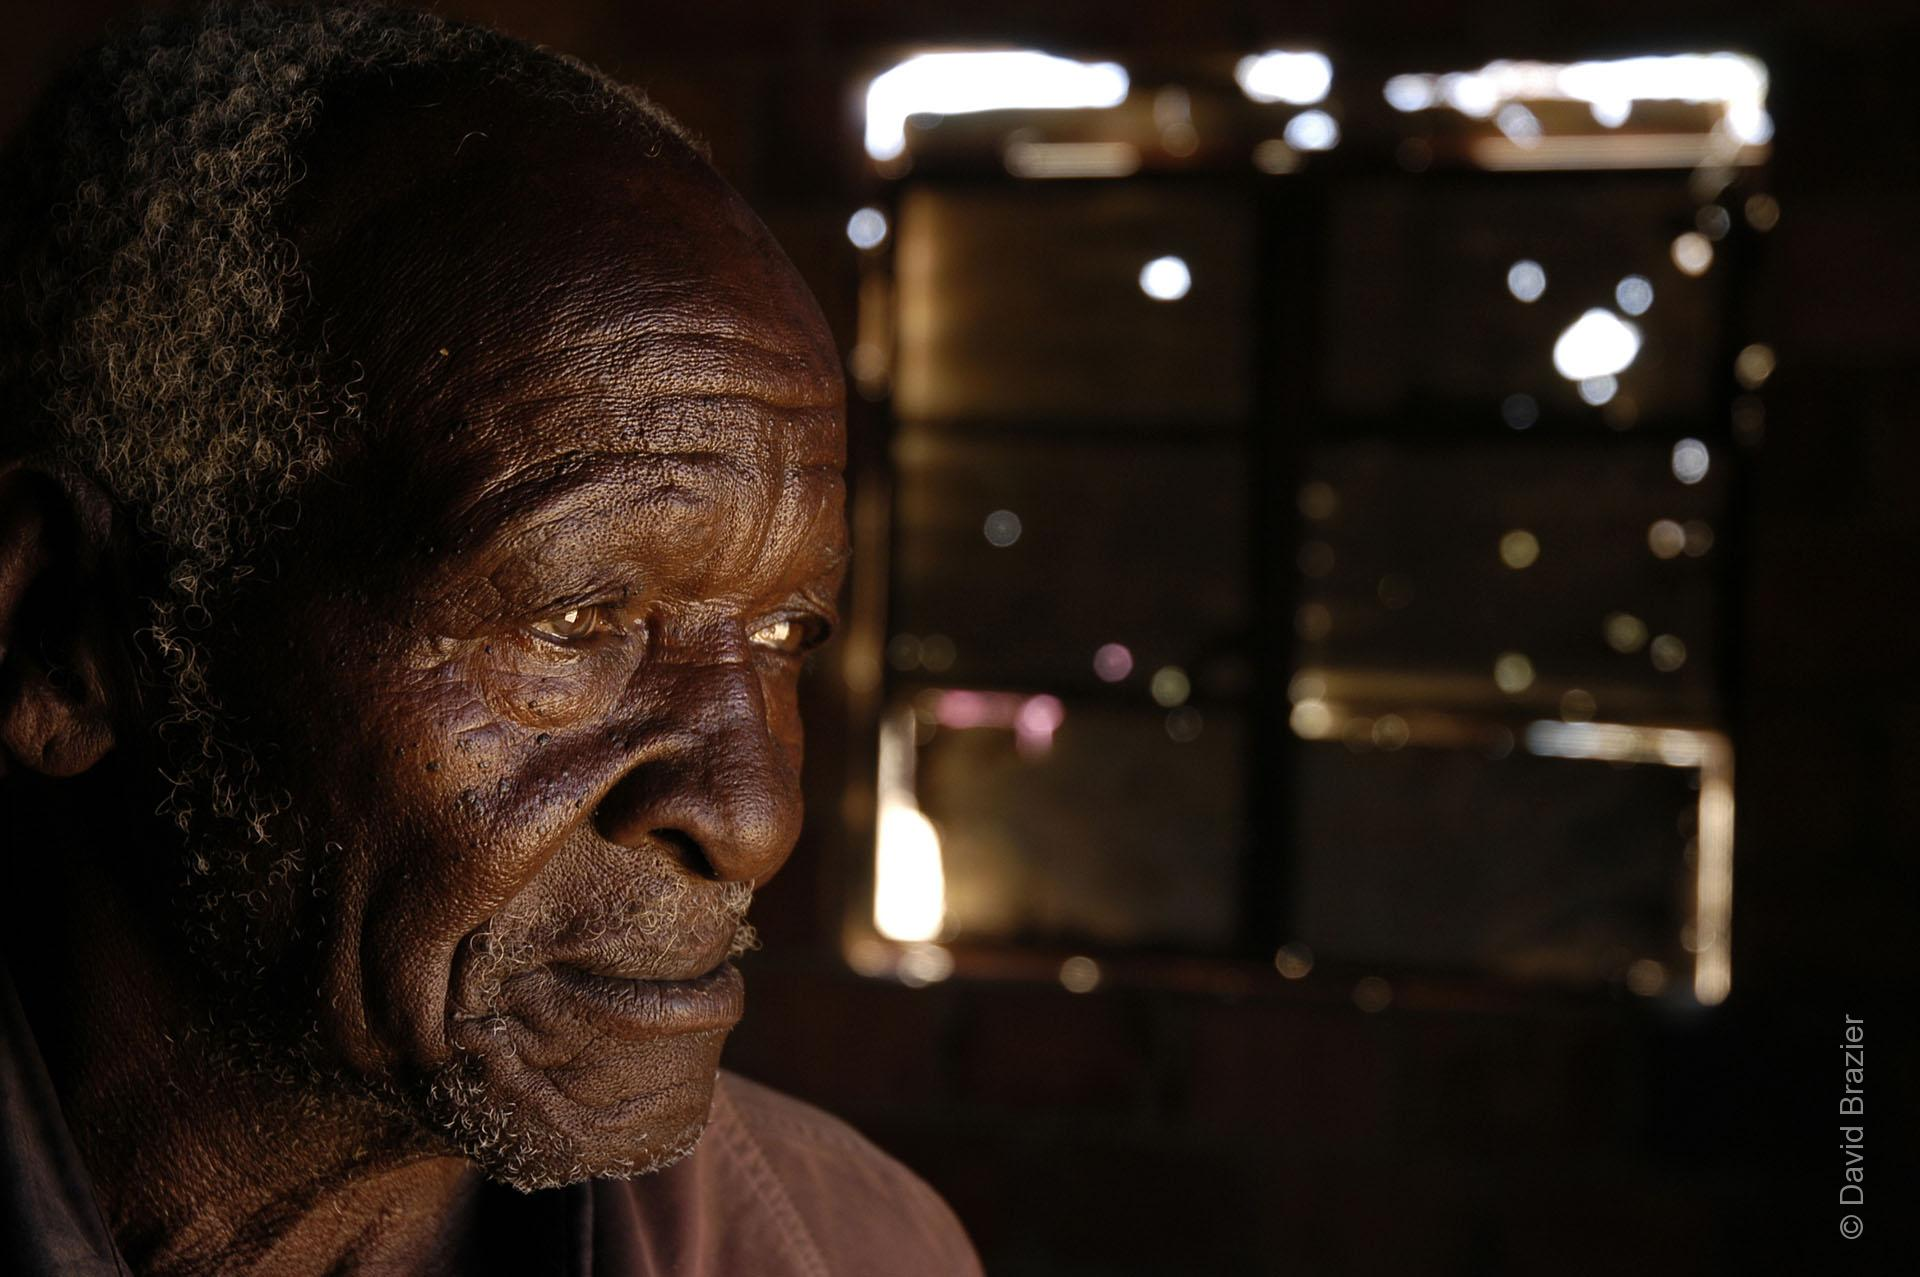 Elderly African man looking sad